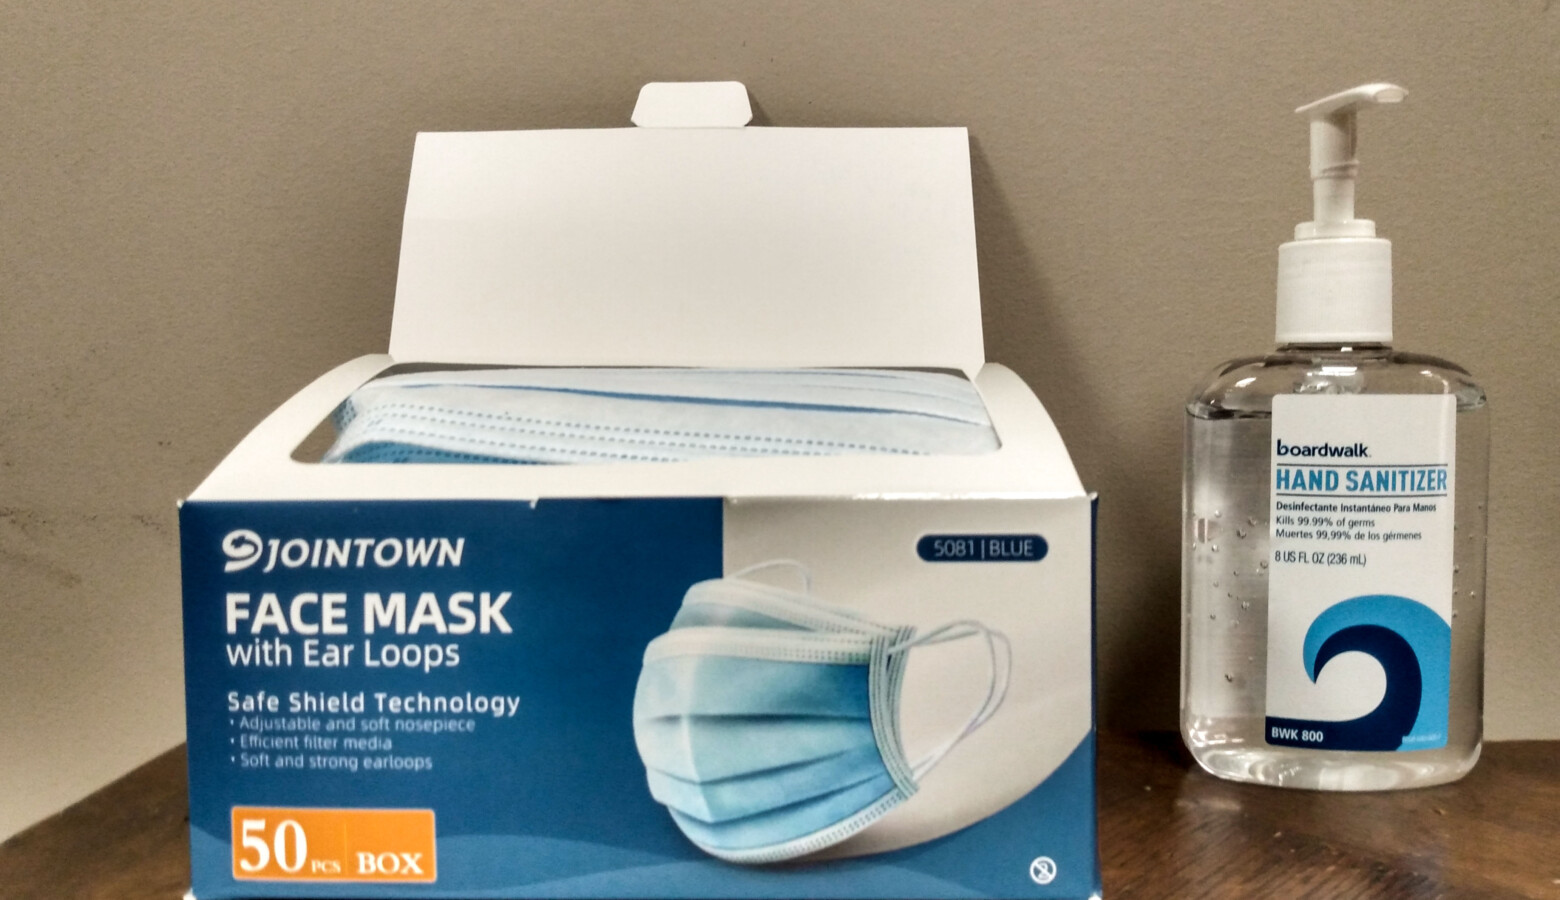 Many businesses are offering hand sanitizer and disposable face masks at their entrances. (Lauren Chapman/IPB News)